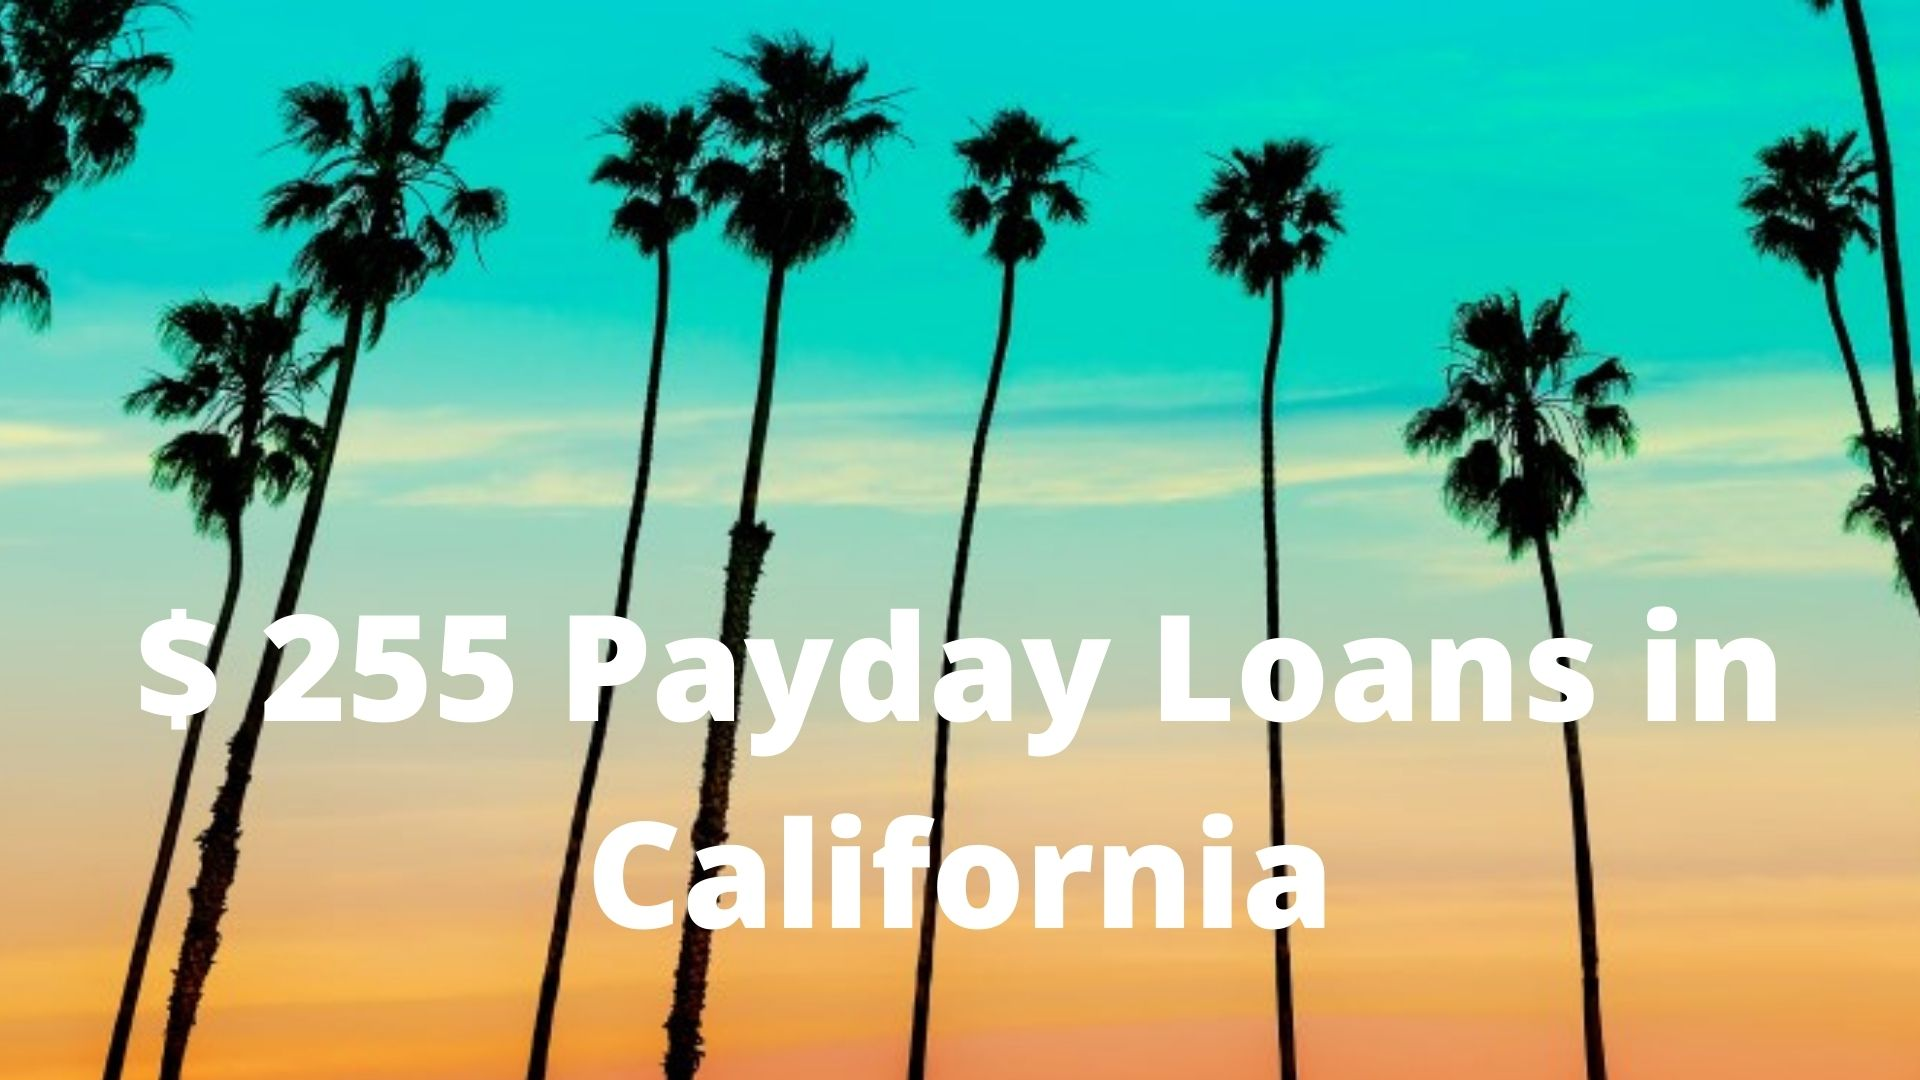 California Online Payday Loans up to $255